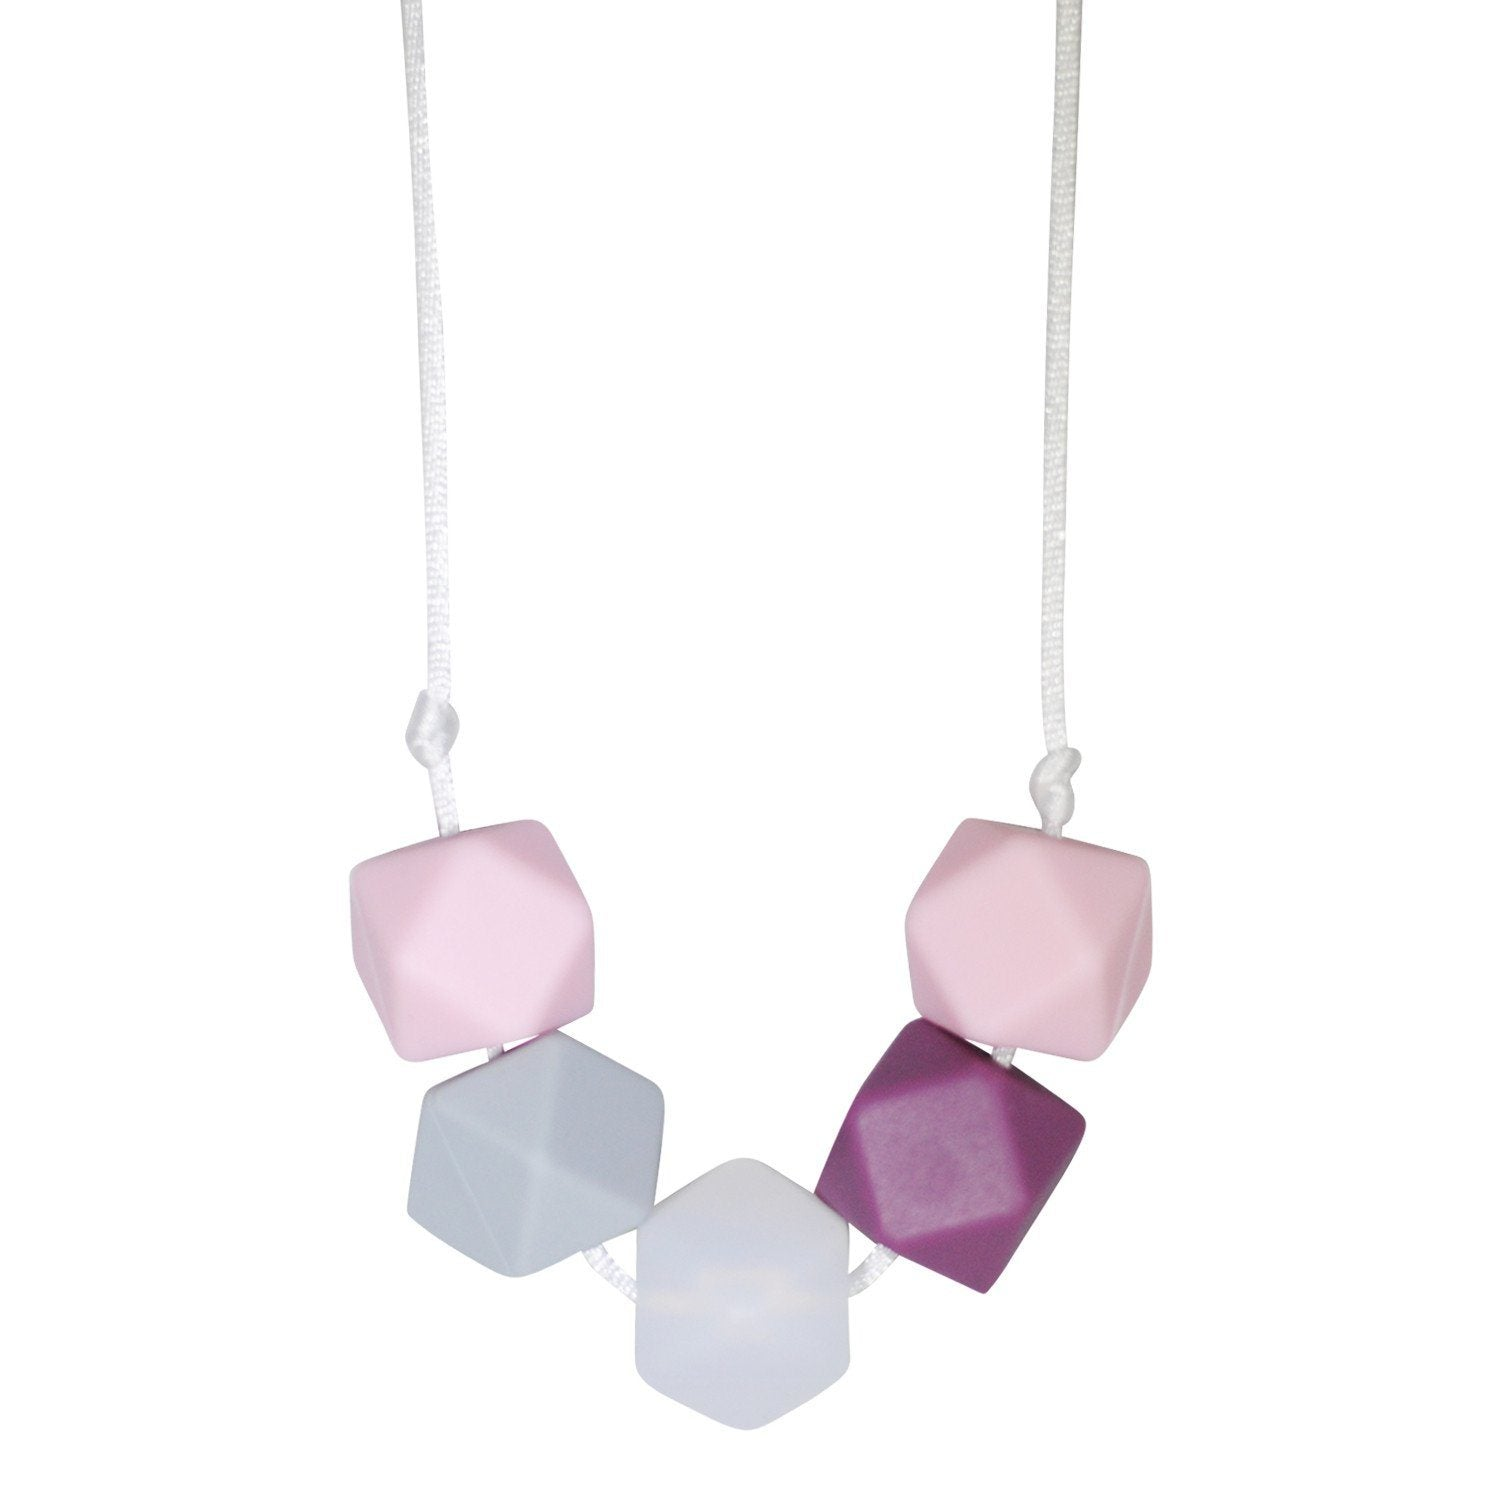 Silicone Teething Necklace - Daniela - Glitter & Spice